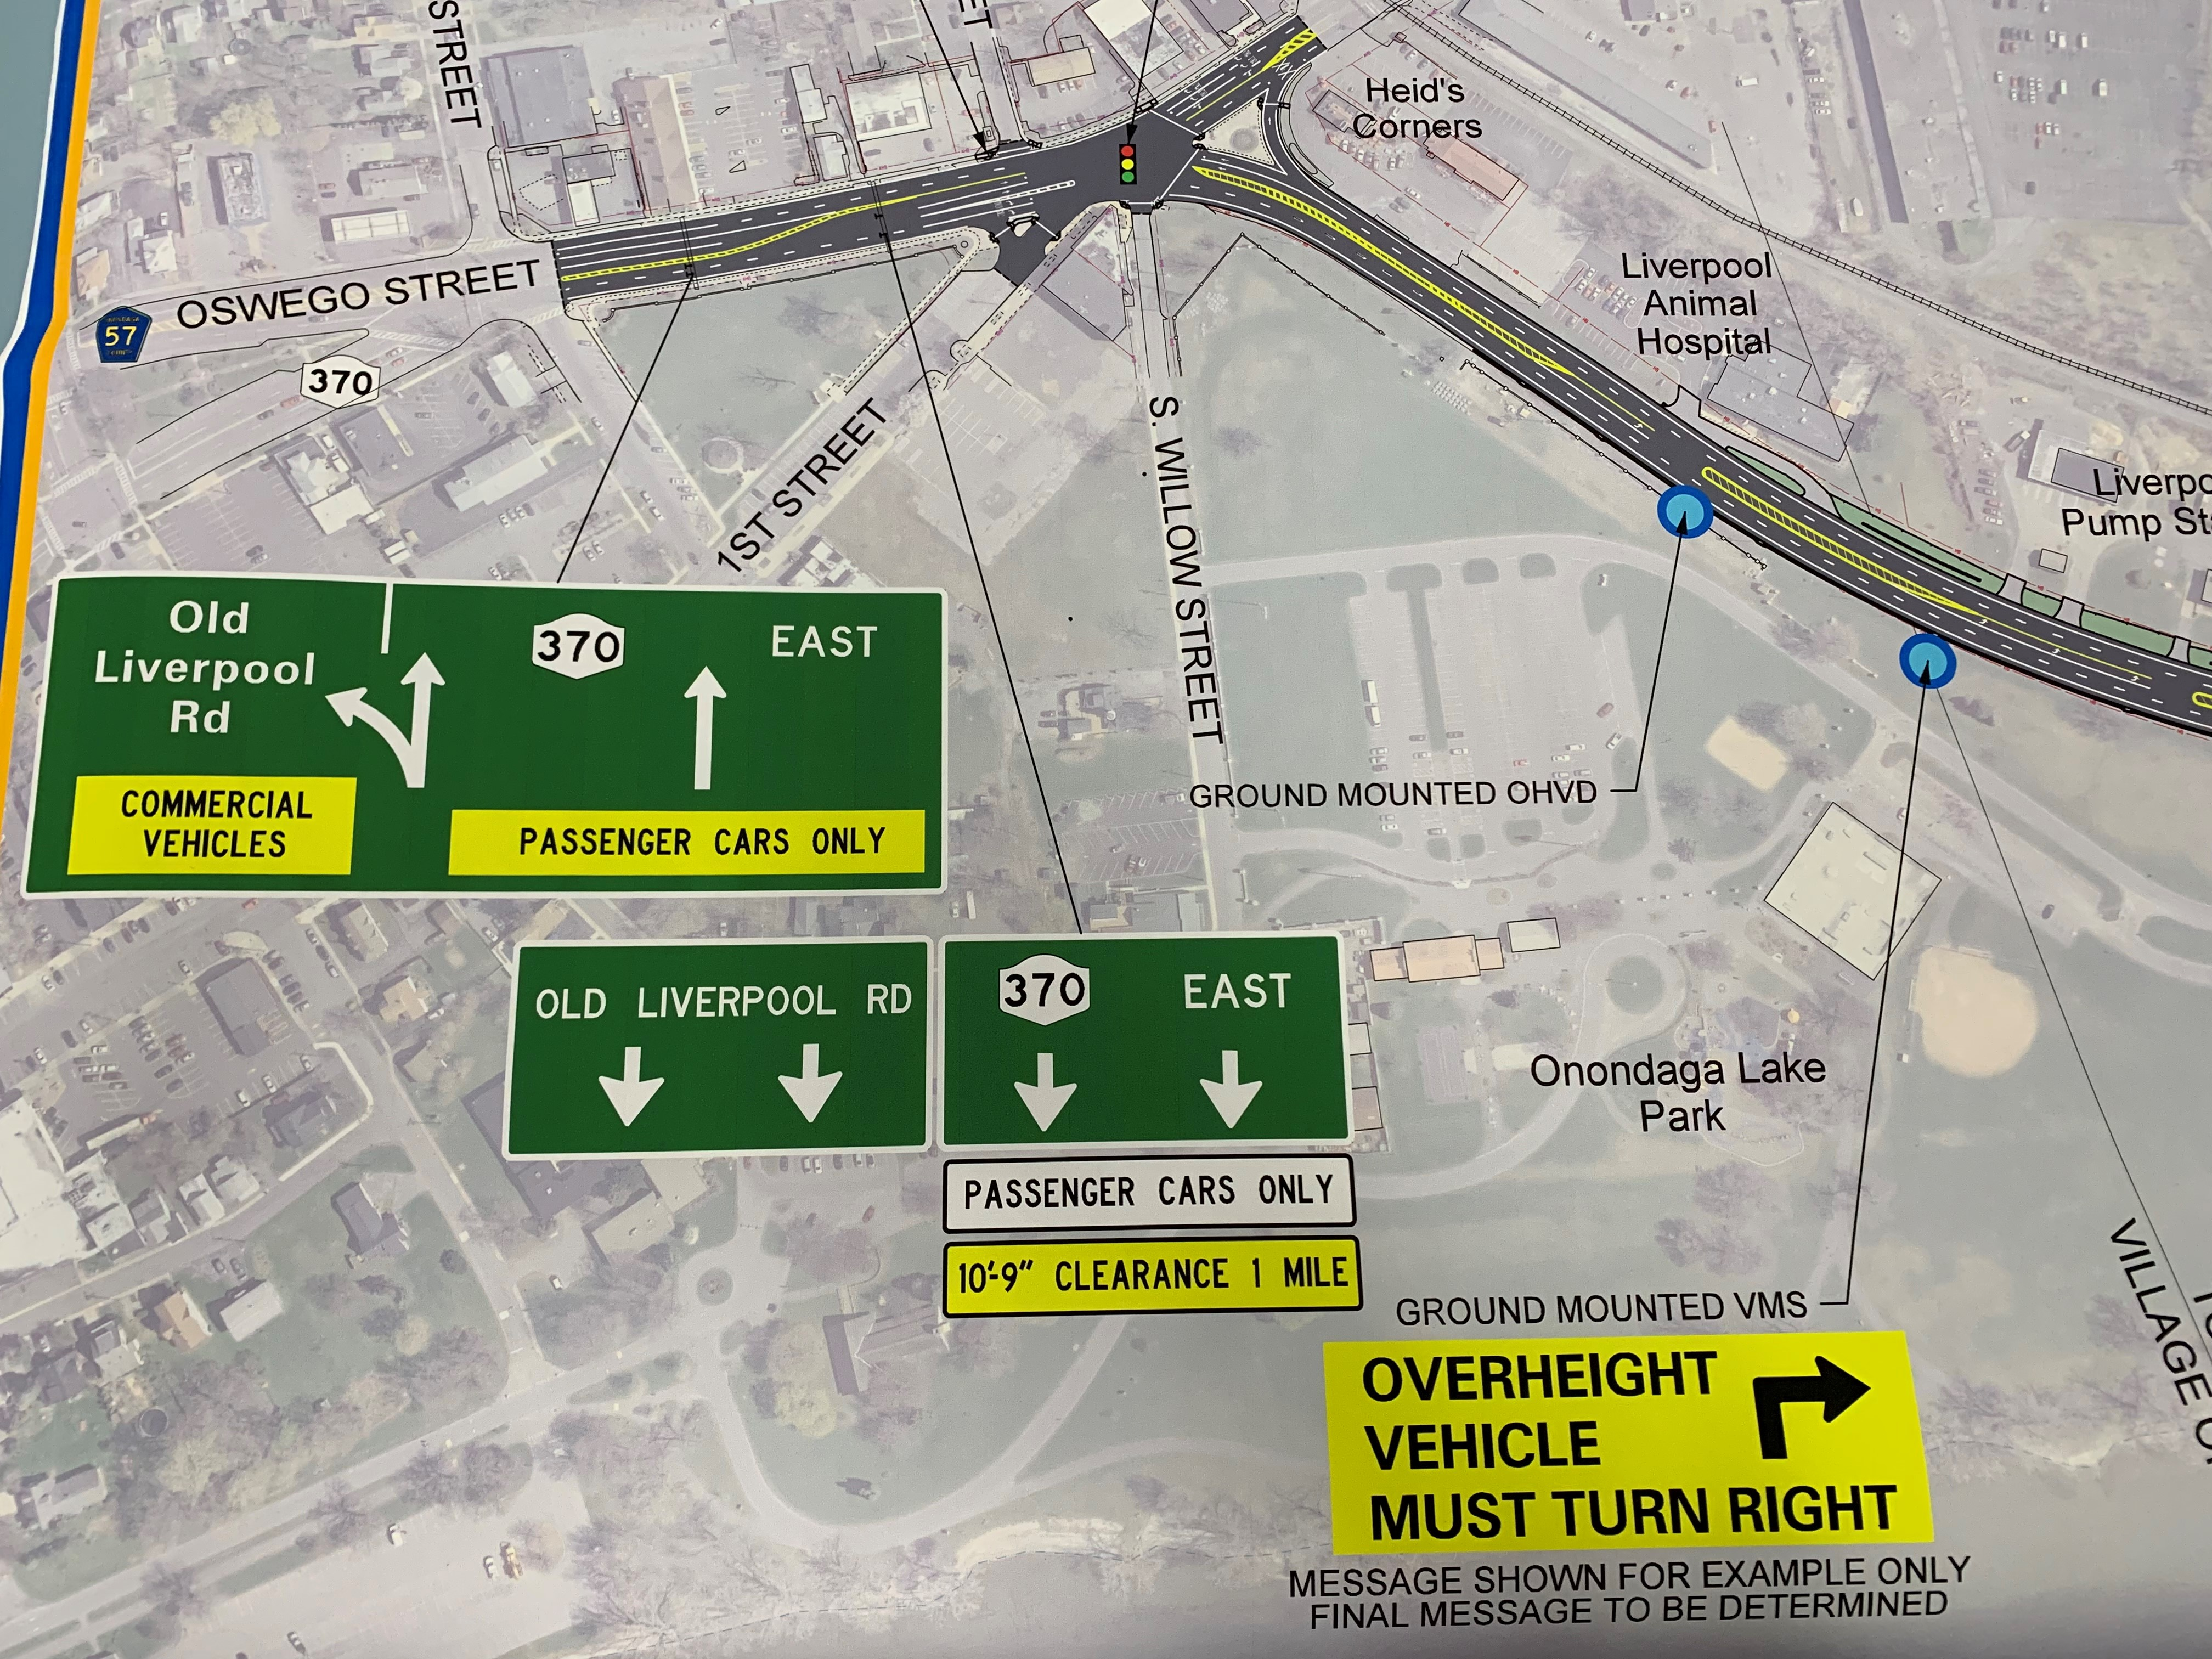 See NY's plans to reduce lanes on Onondaga Lake Parkway